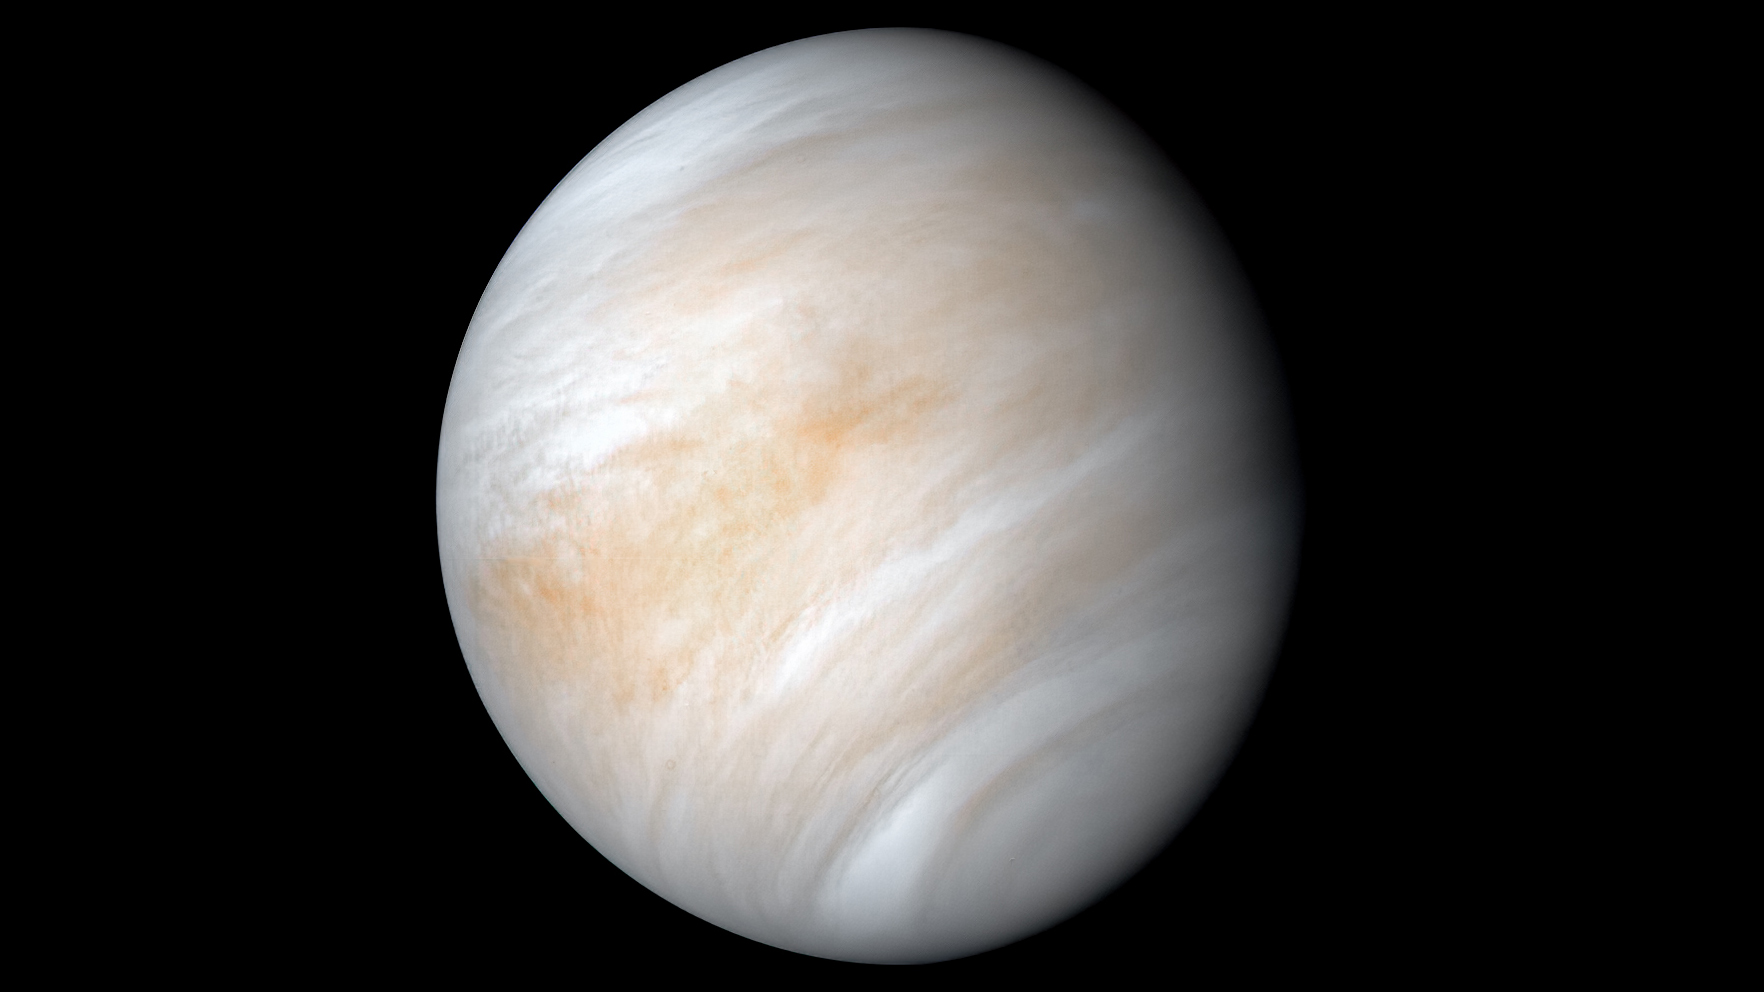 NASA snapped this image of Venus using its Mariner 10 probe during a flyby in 1974.